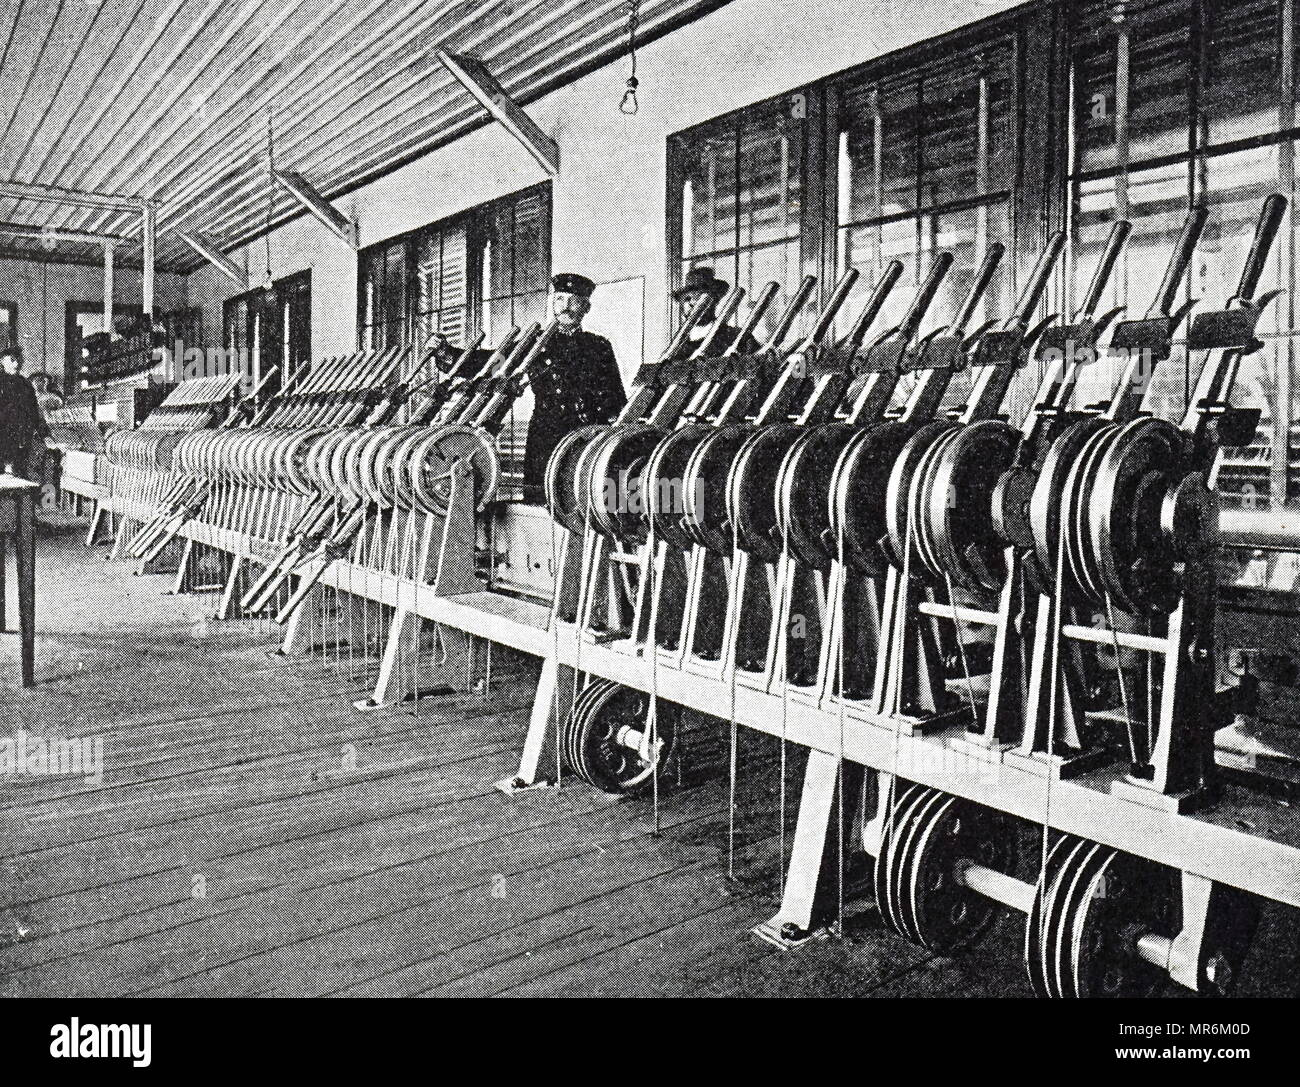 Photograph of the signal box in Dusseldorf station. Dated 19th century - Stock Image